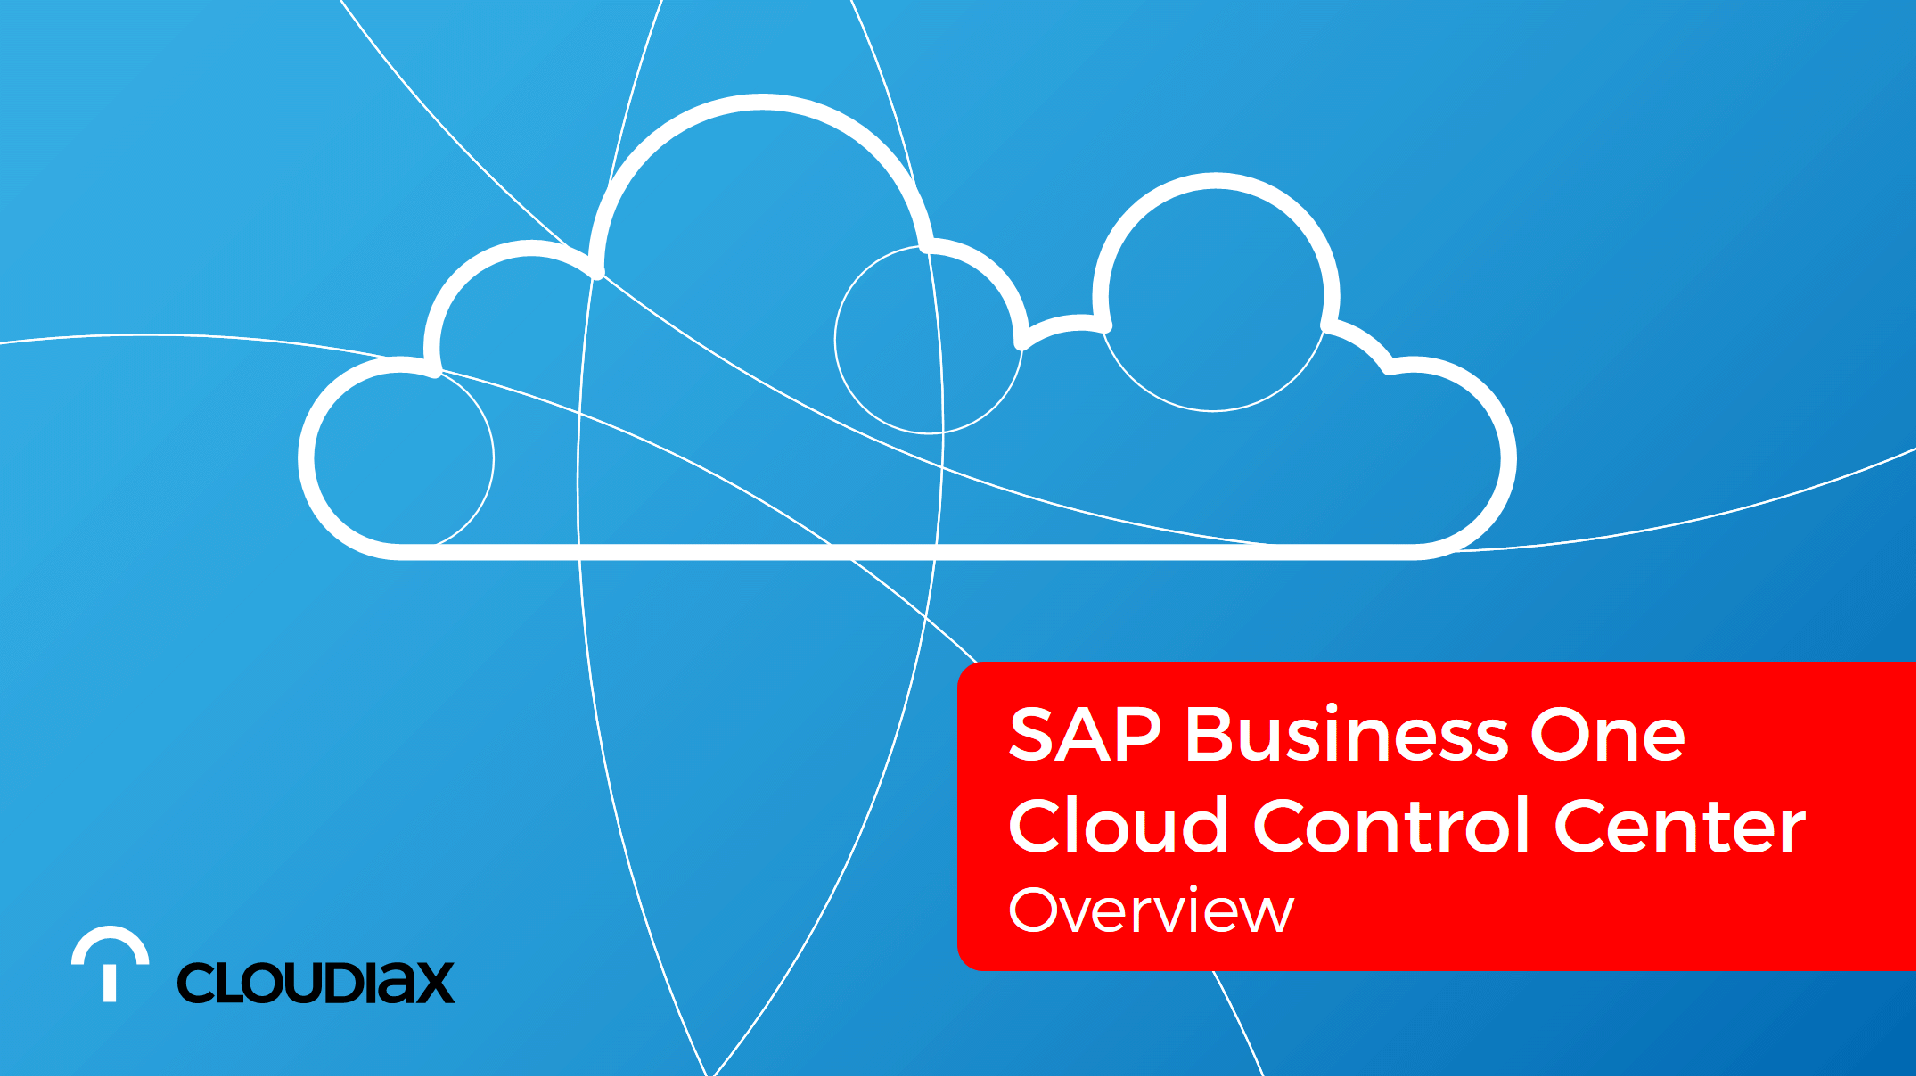 SAP Business One Cloud Control Center - Overview